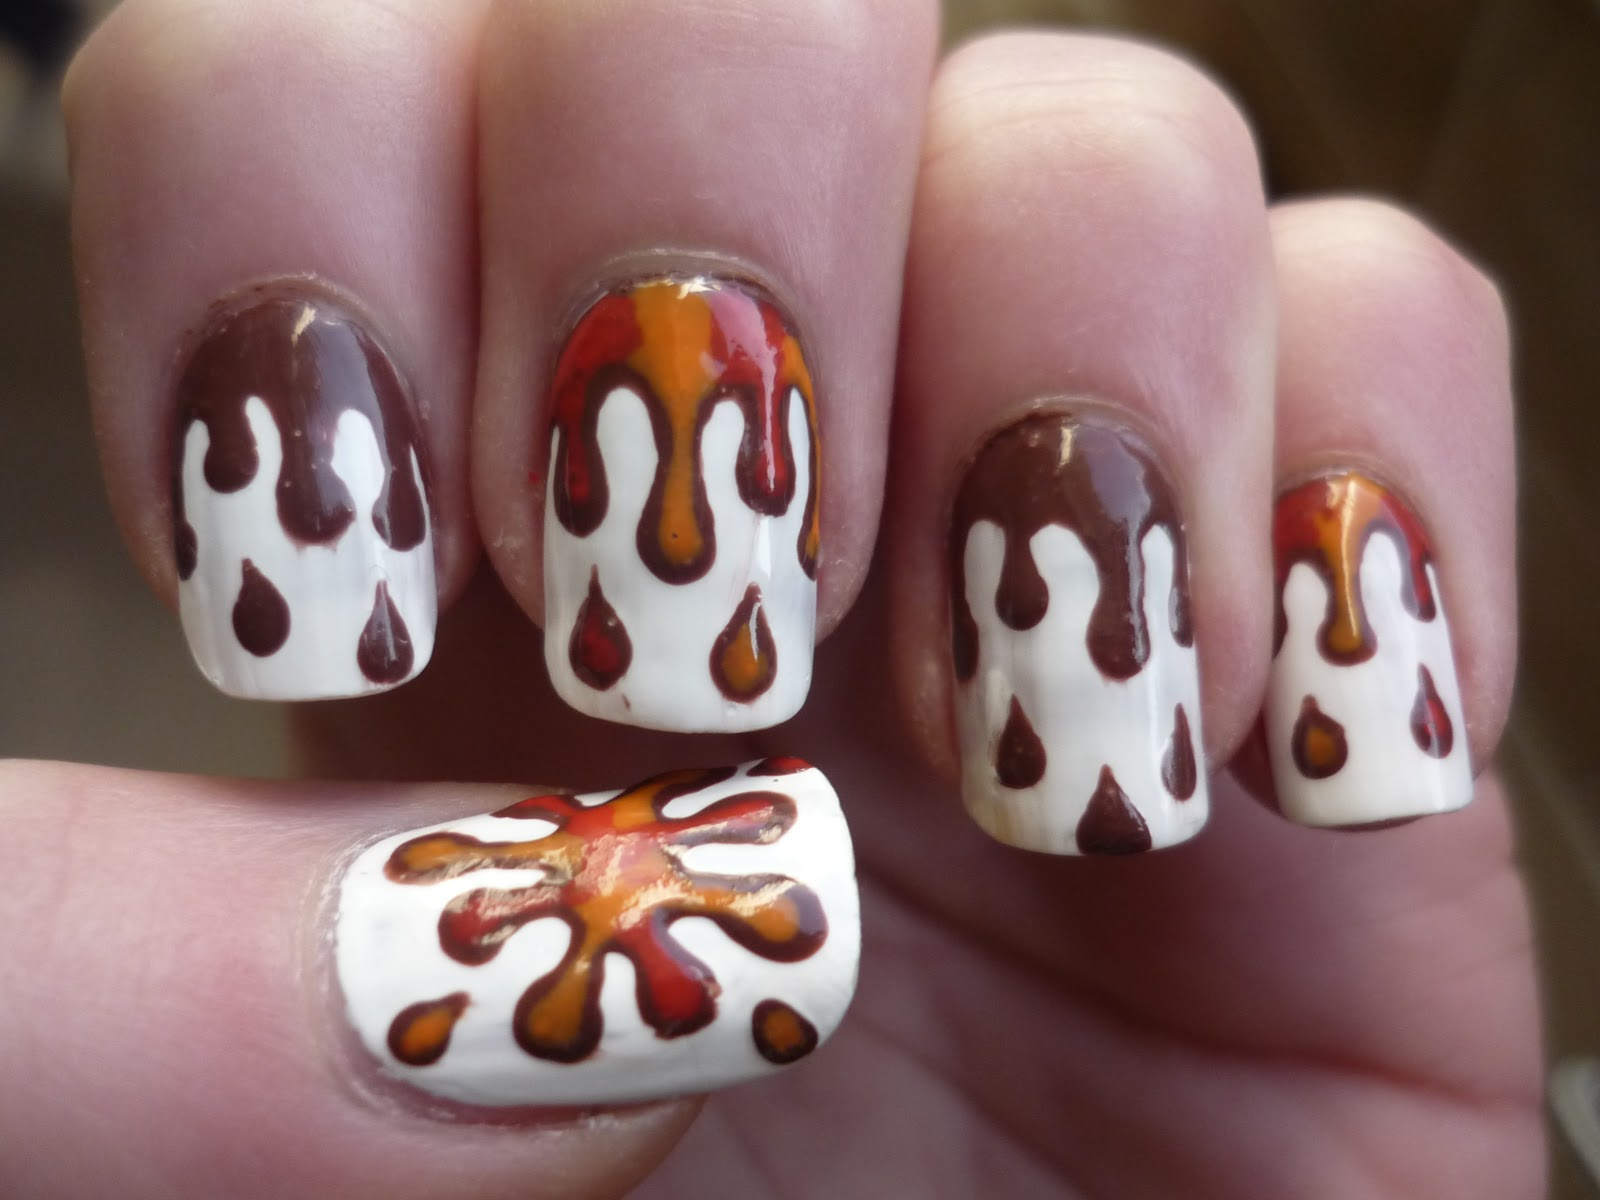 Melting Chocolate Nails Juliatmll Nail Art